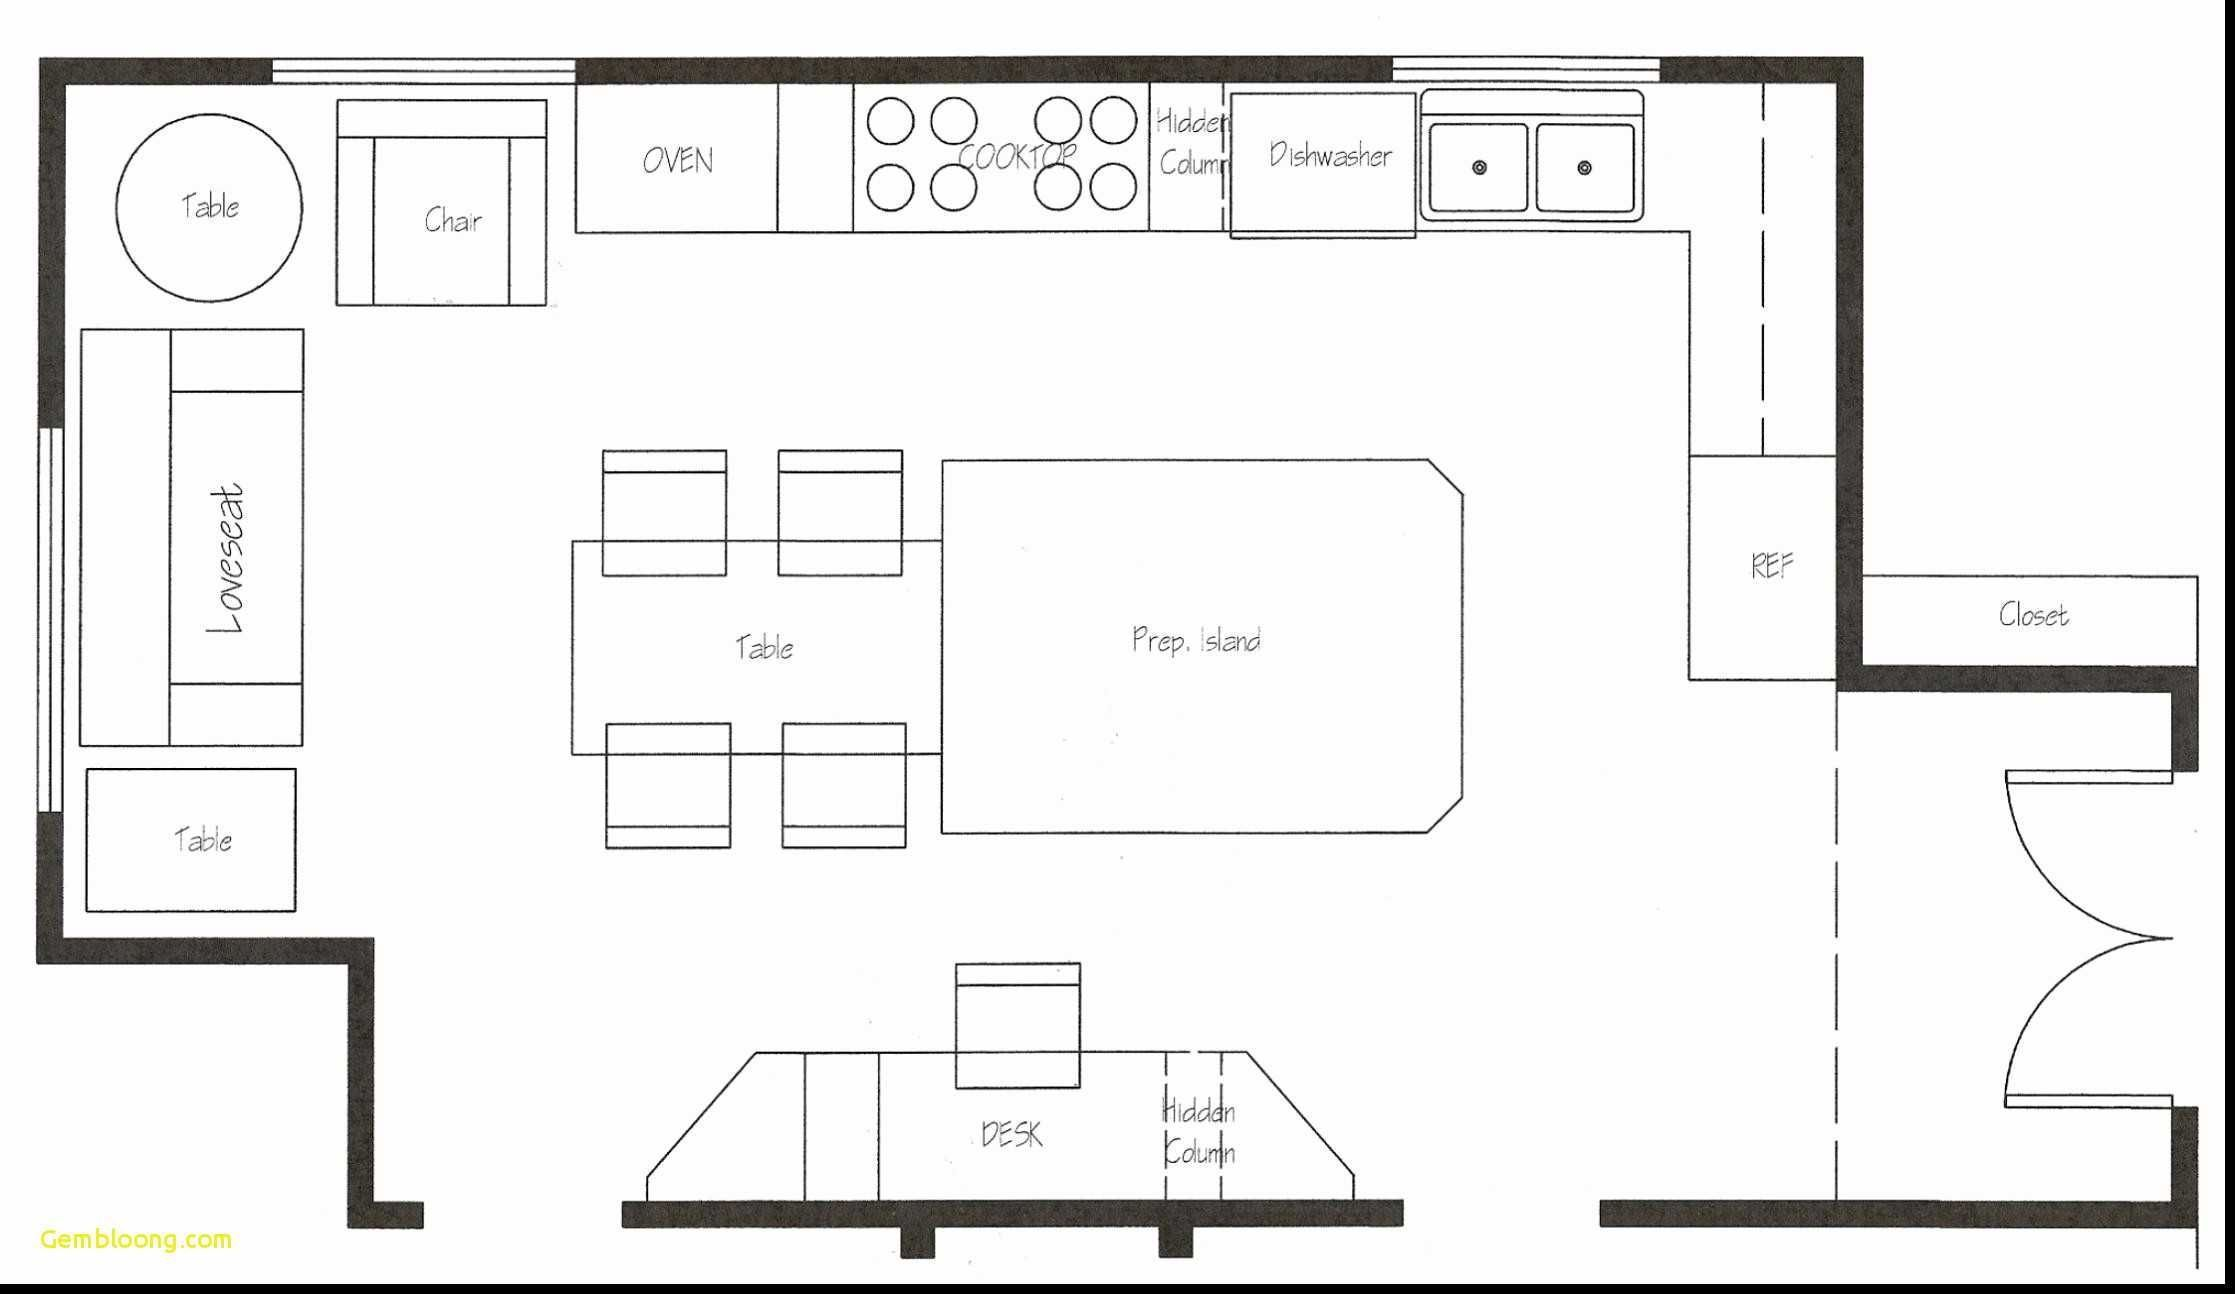 Small House Plans With Loft 25 Elegant Lovely Open Floor Plans With Loft Open Floor Plan Beautiful Denah Lantai Rumah Denah Lantai Denah Rumah